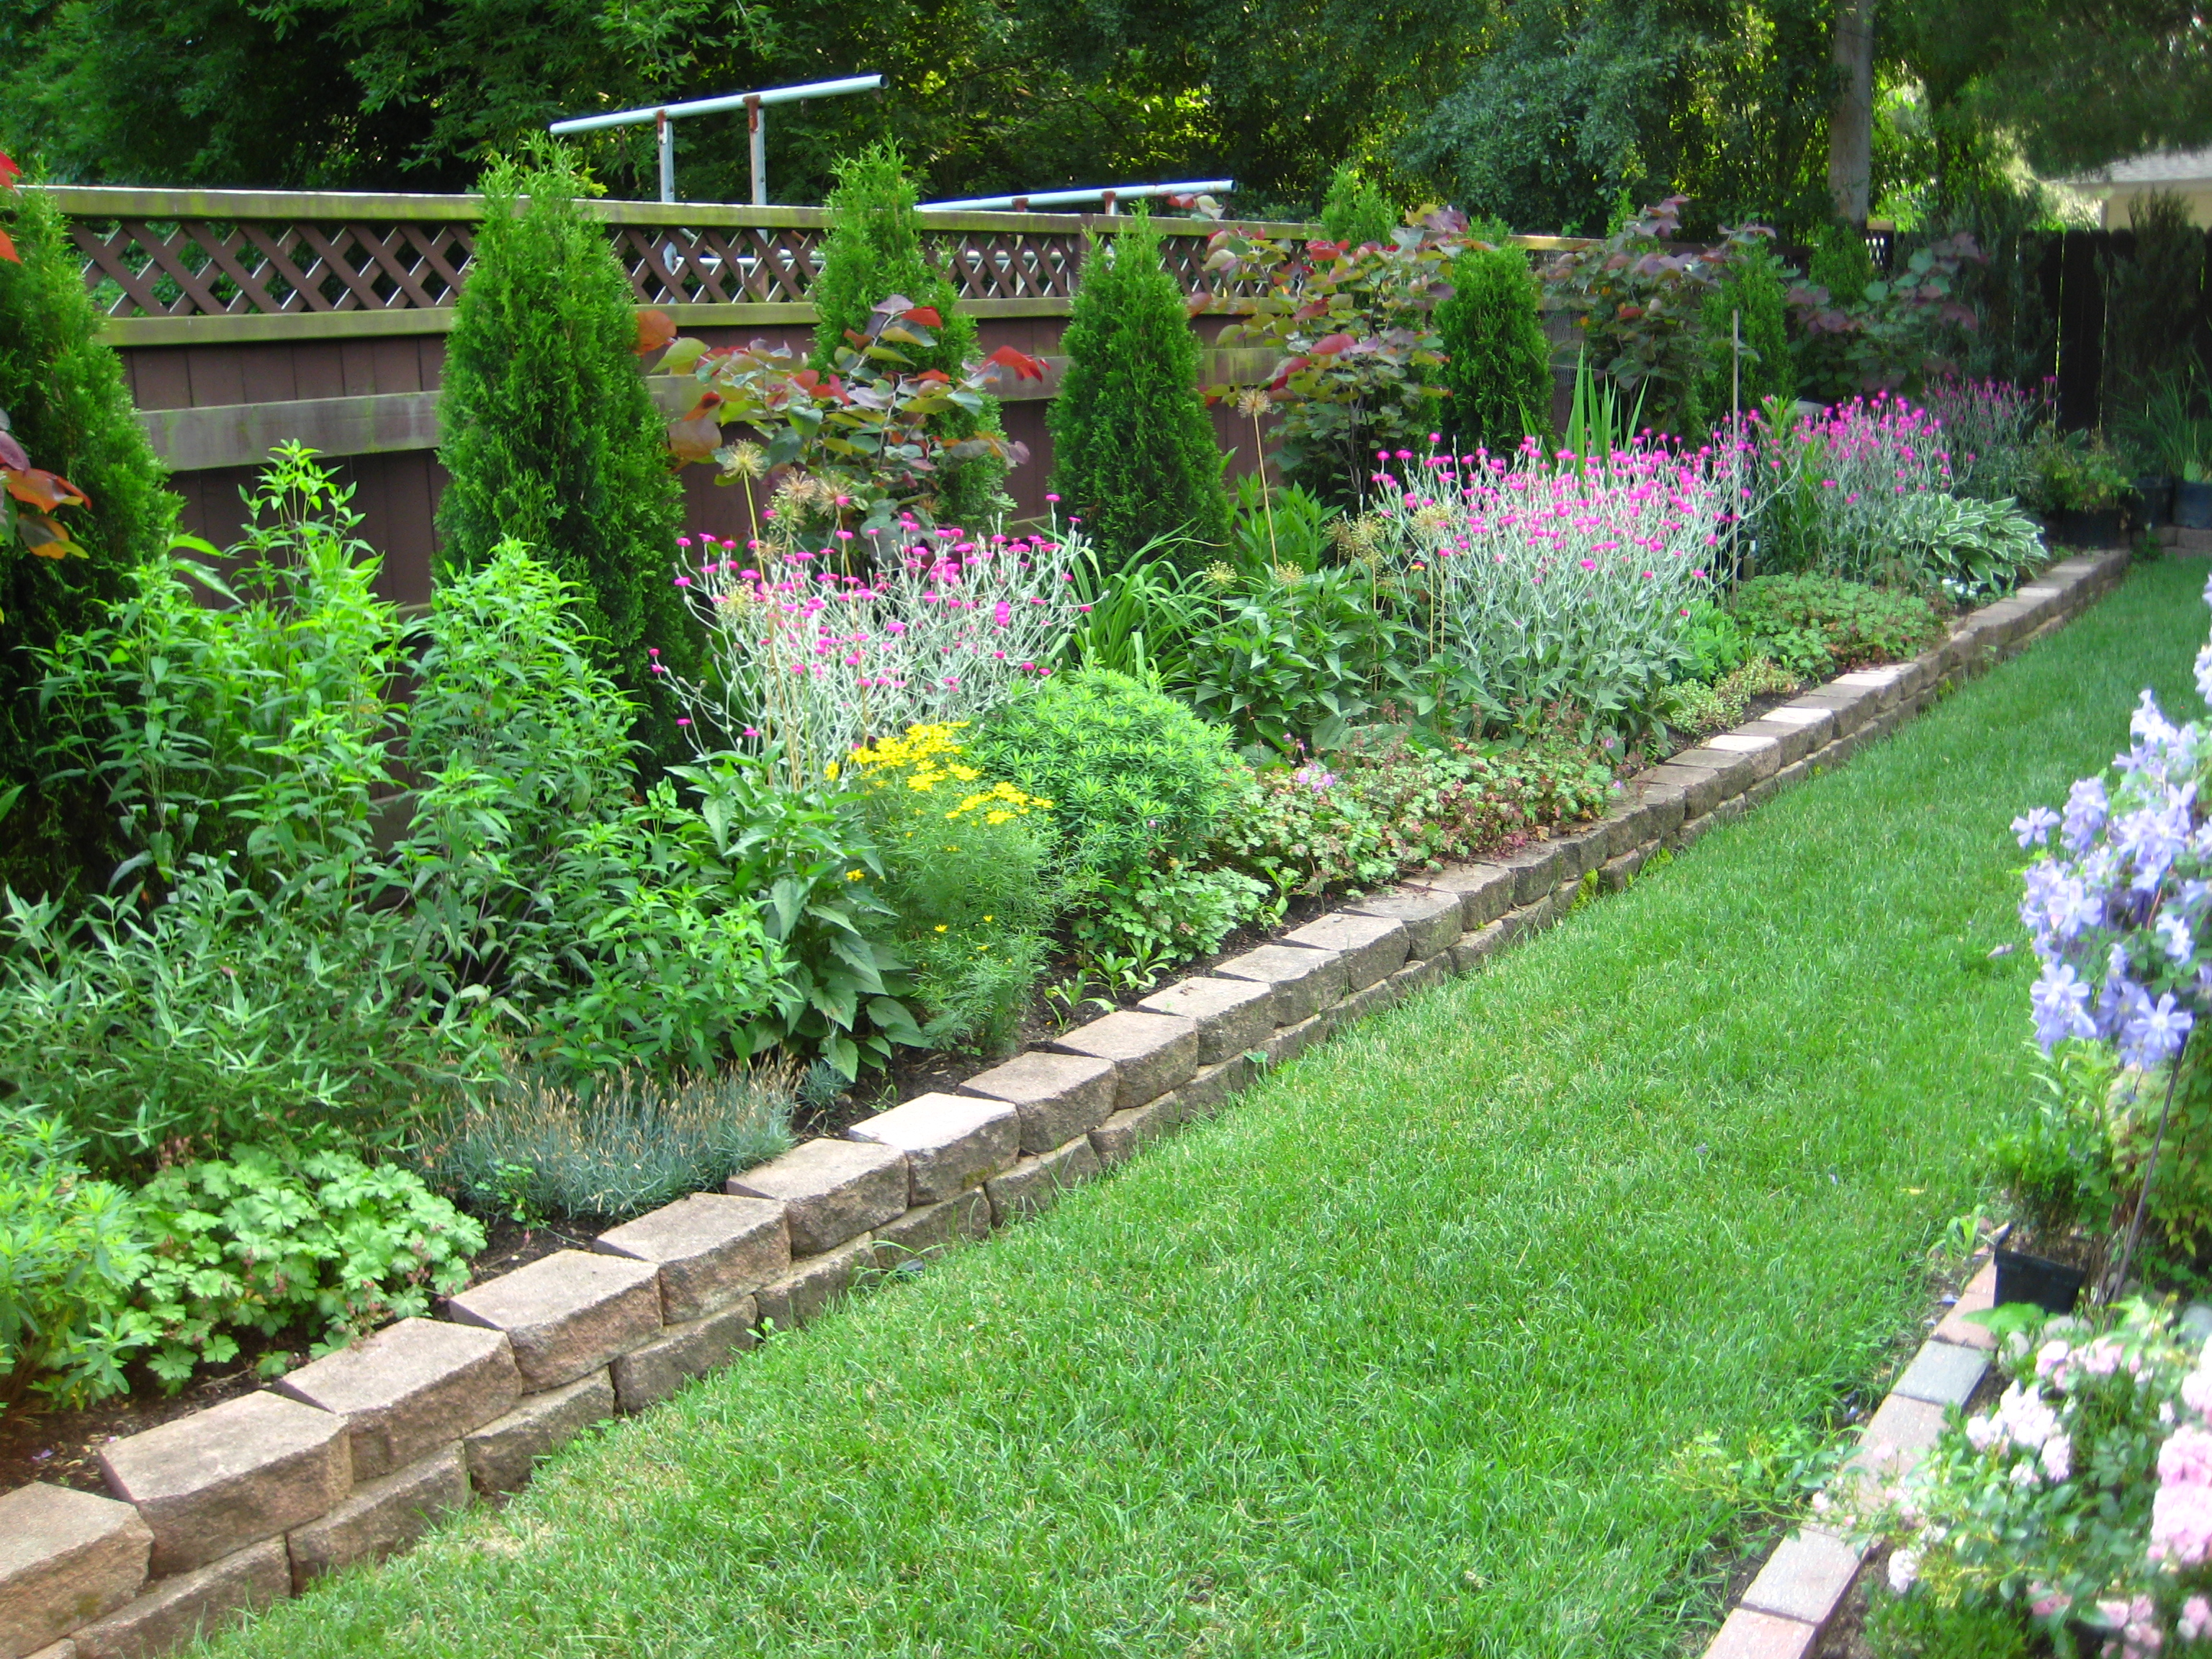 Flower garden pictures ideas - Backyard Flower Garden